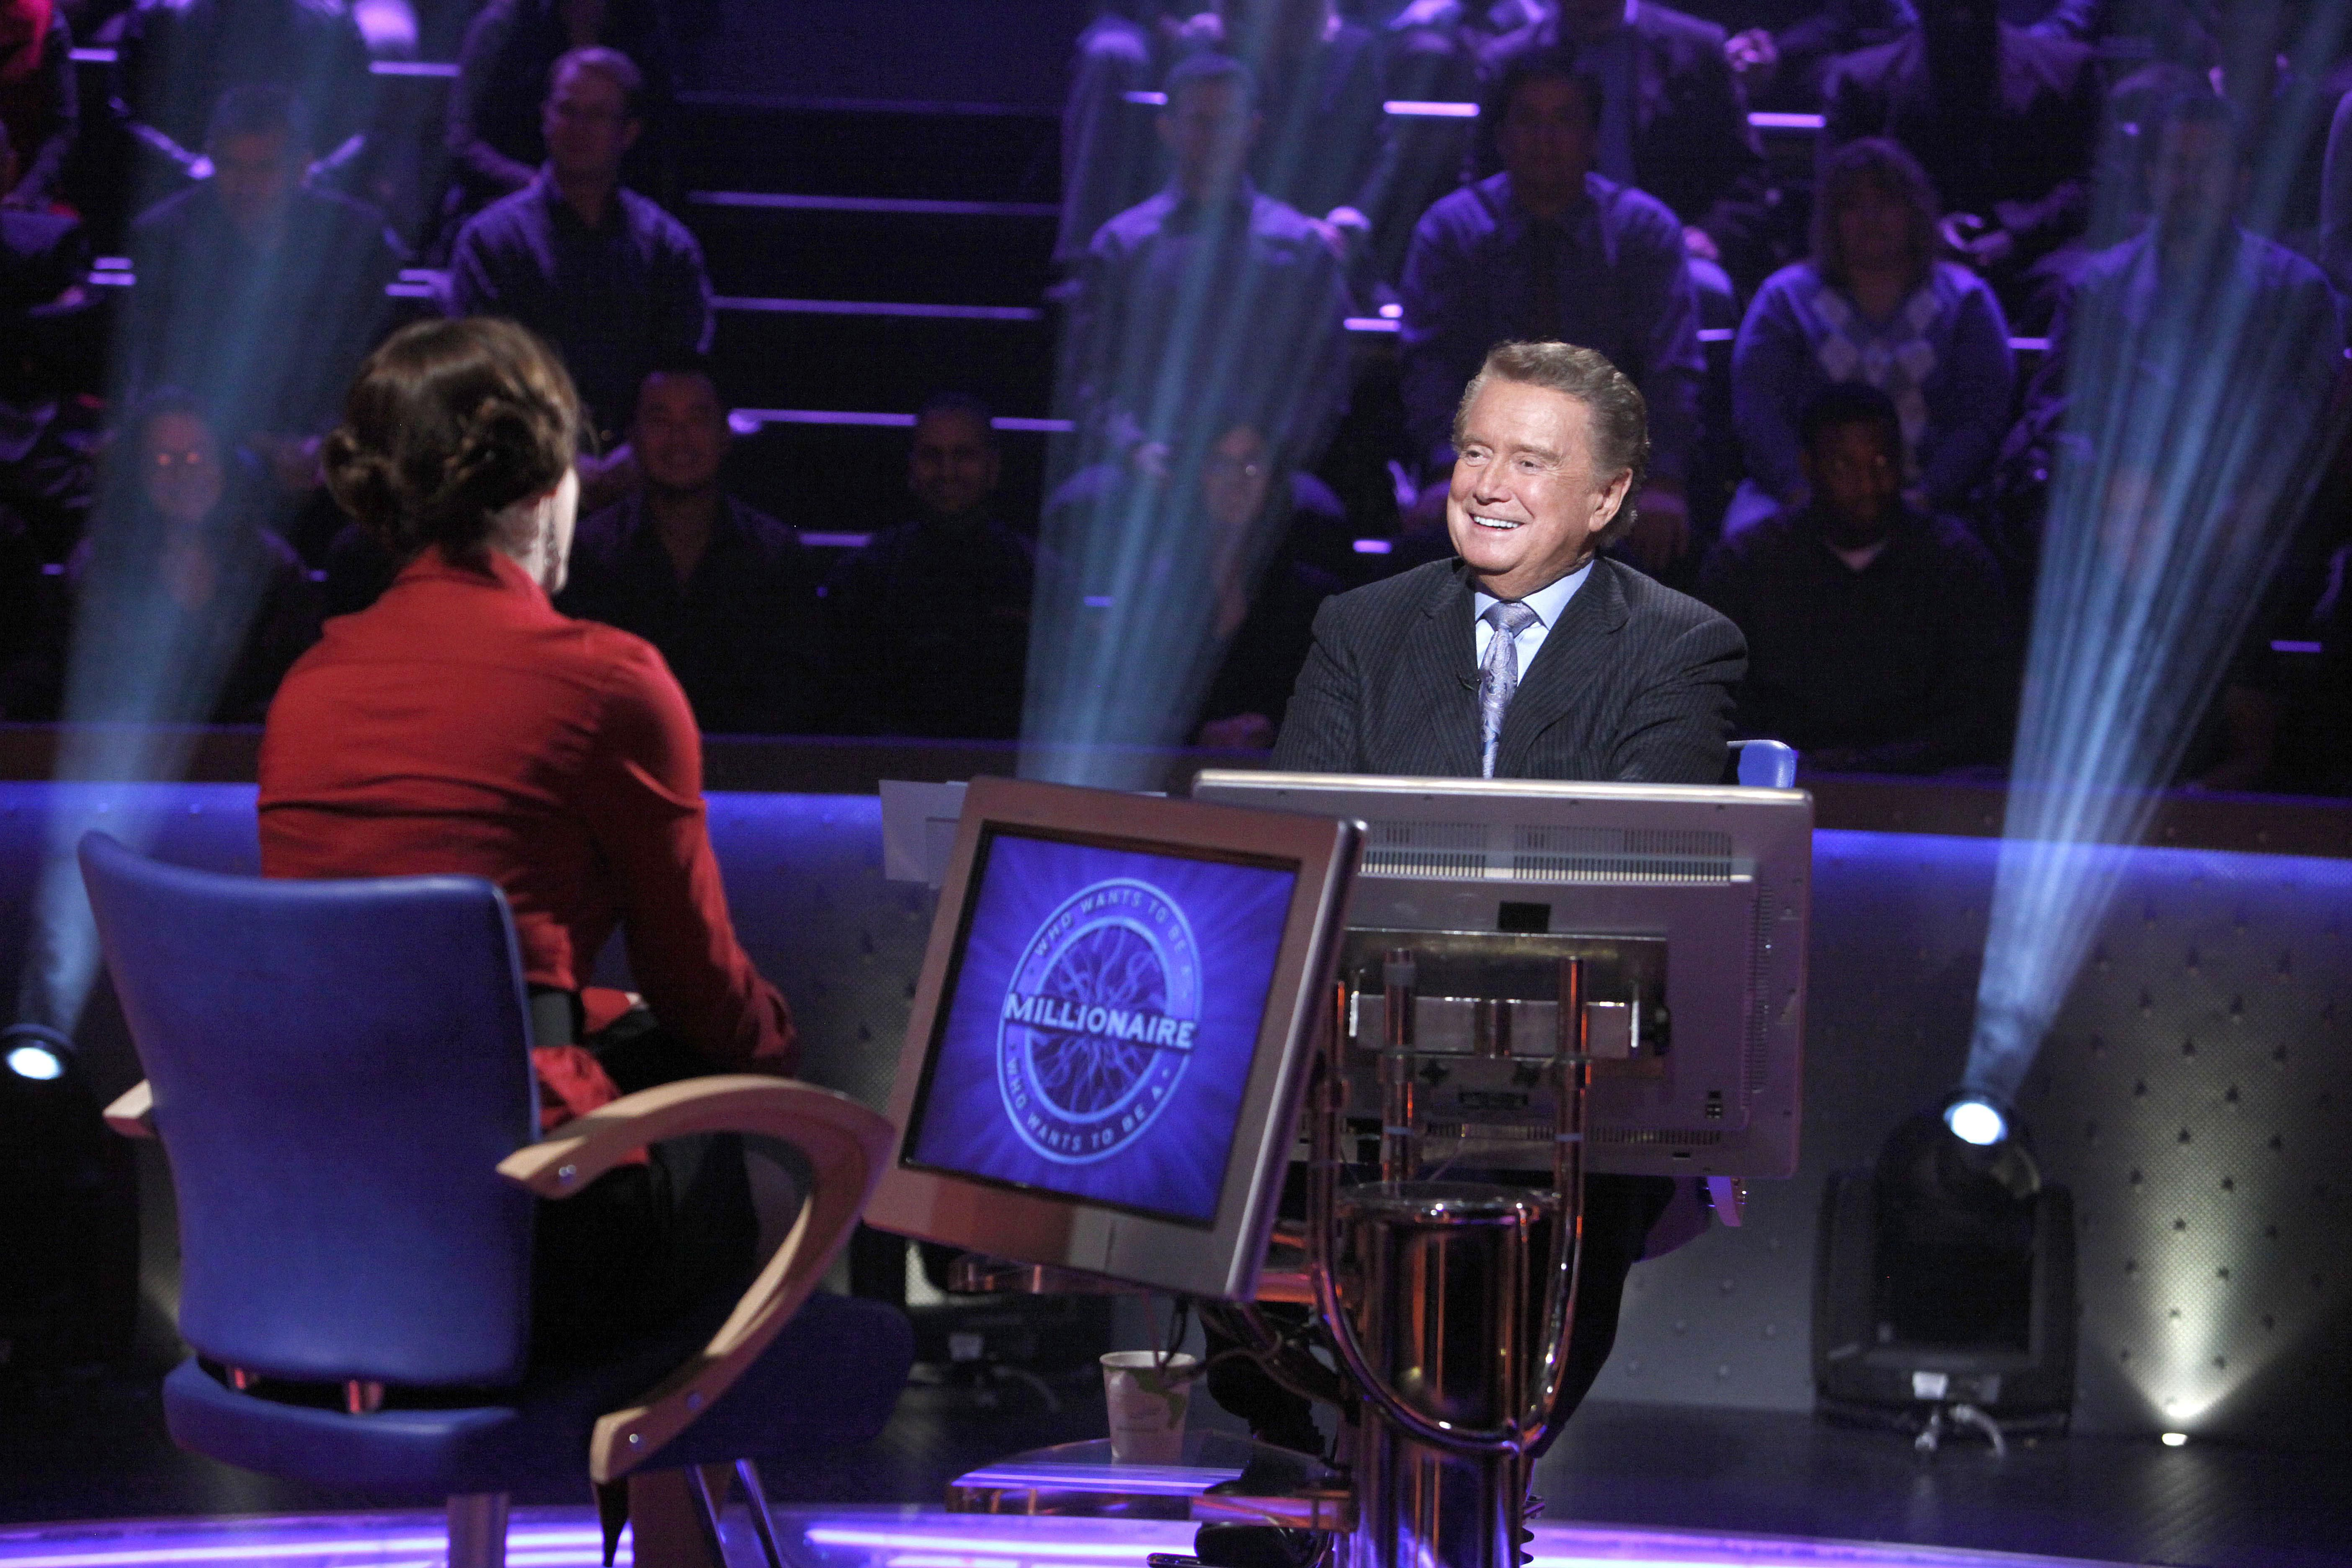 original who wants to be a millionaire host